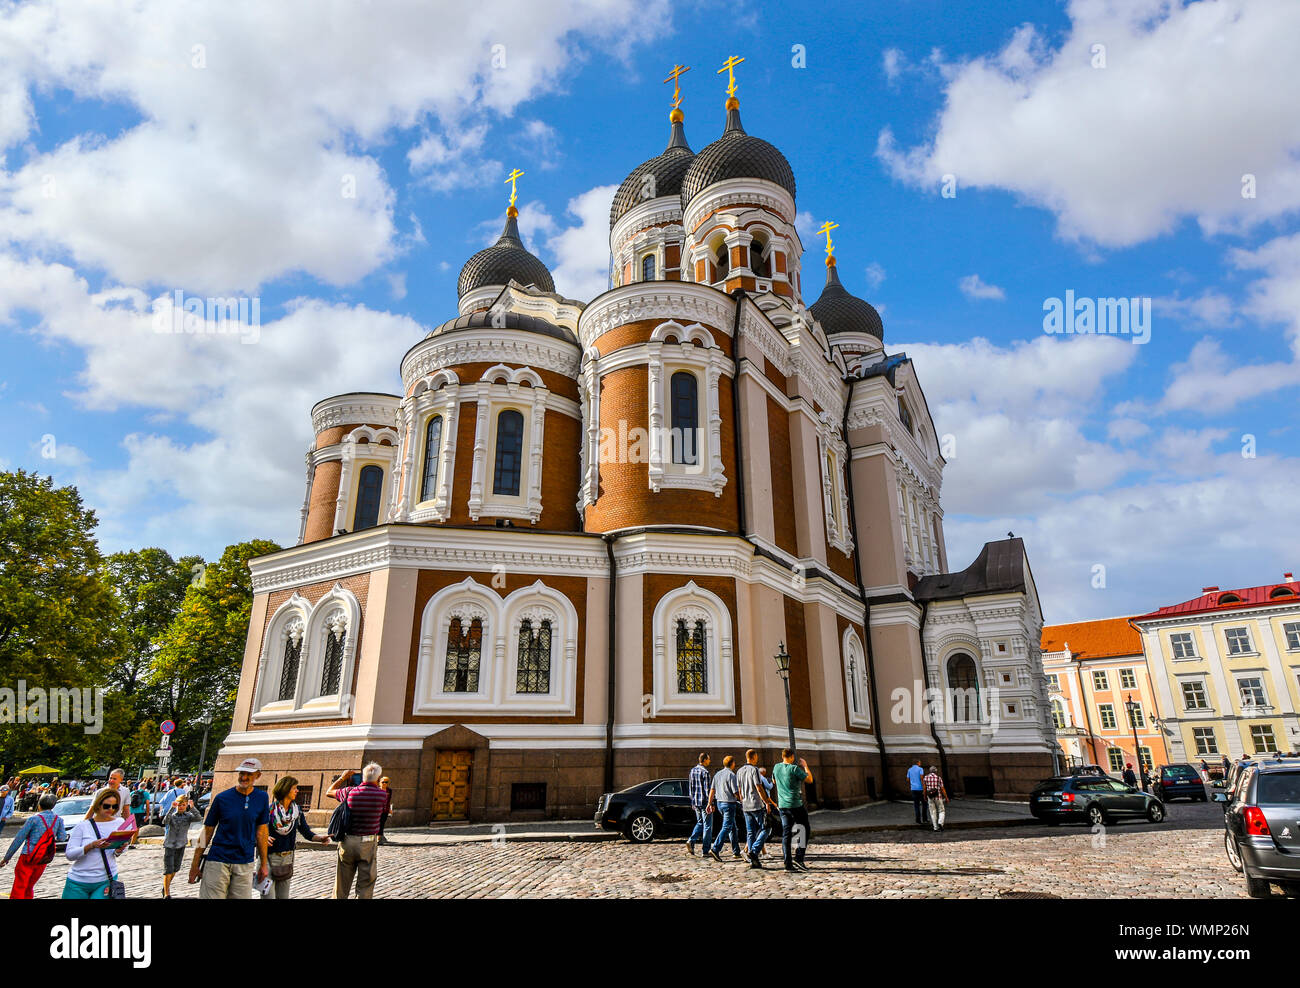 Tourists walk past the Alexander Nevsky  Church in the medieval upper town of Toompea Hill early morning in the Baltic city of Tallinn, Estonia. Stock Photo